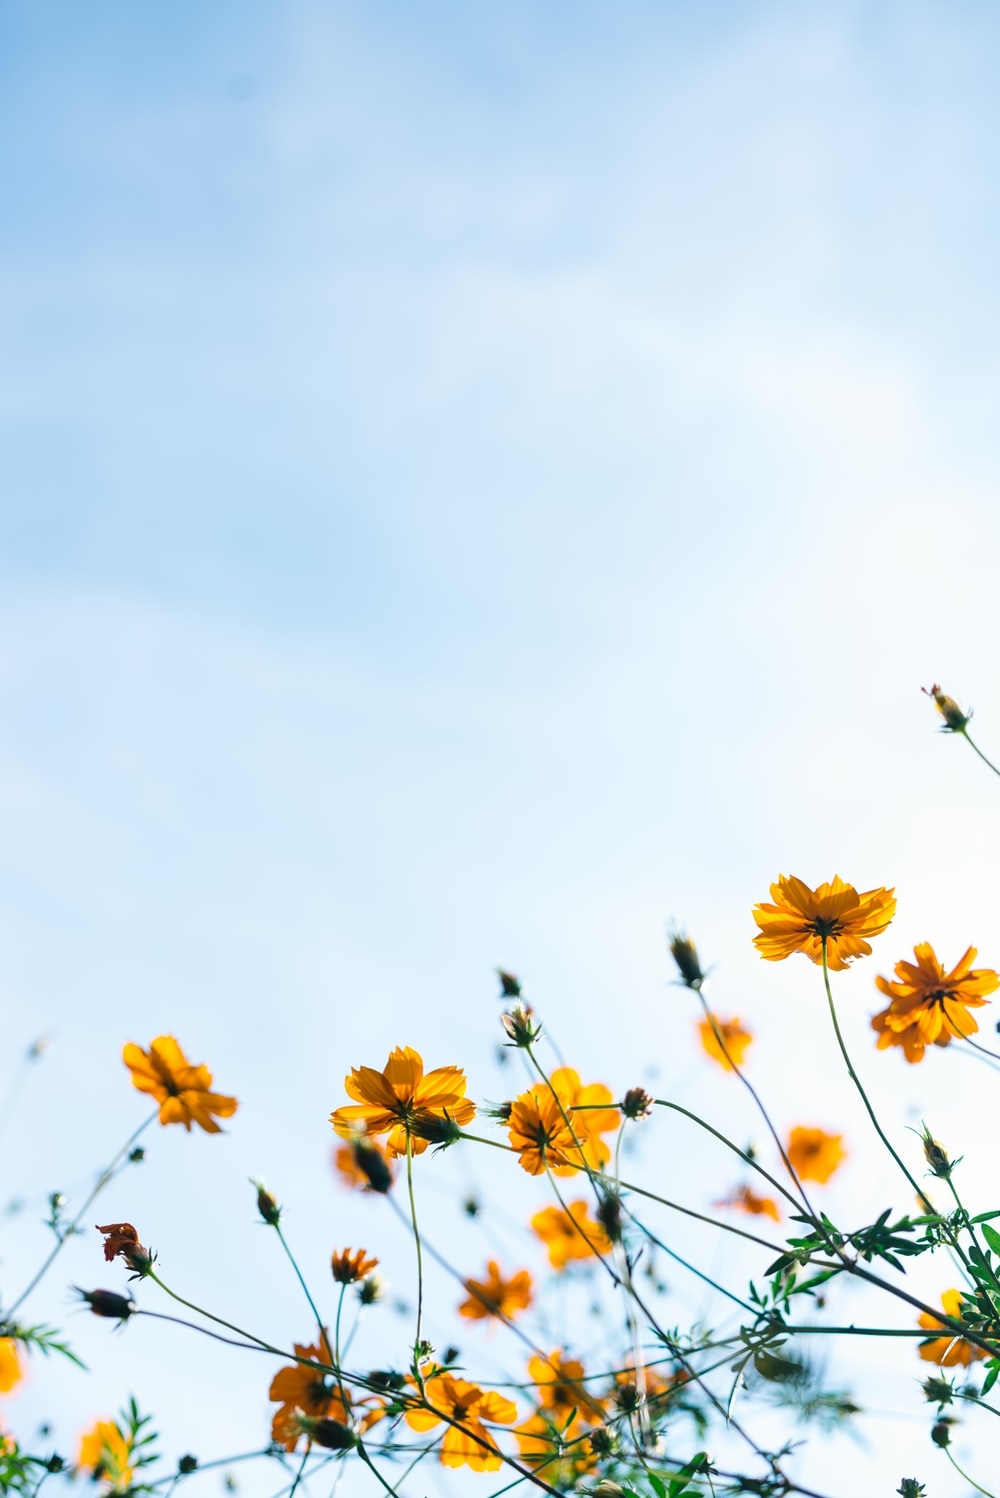 Spring Pictures Download Free Images Stock Photos On Unsplash